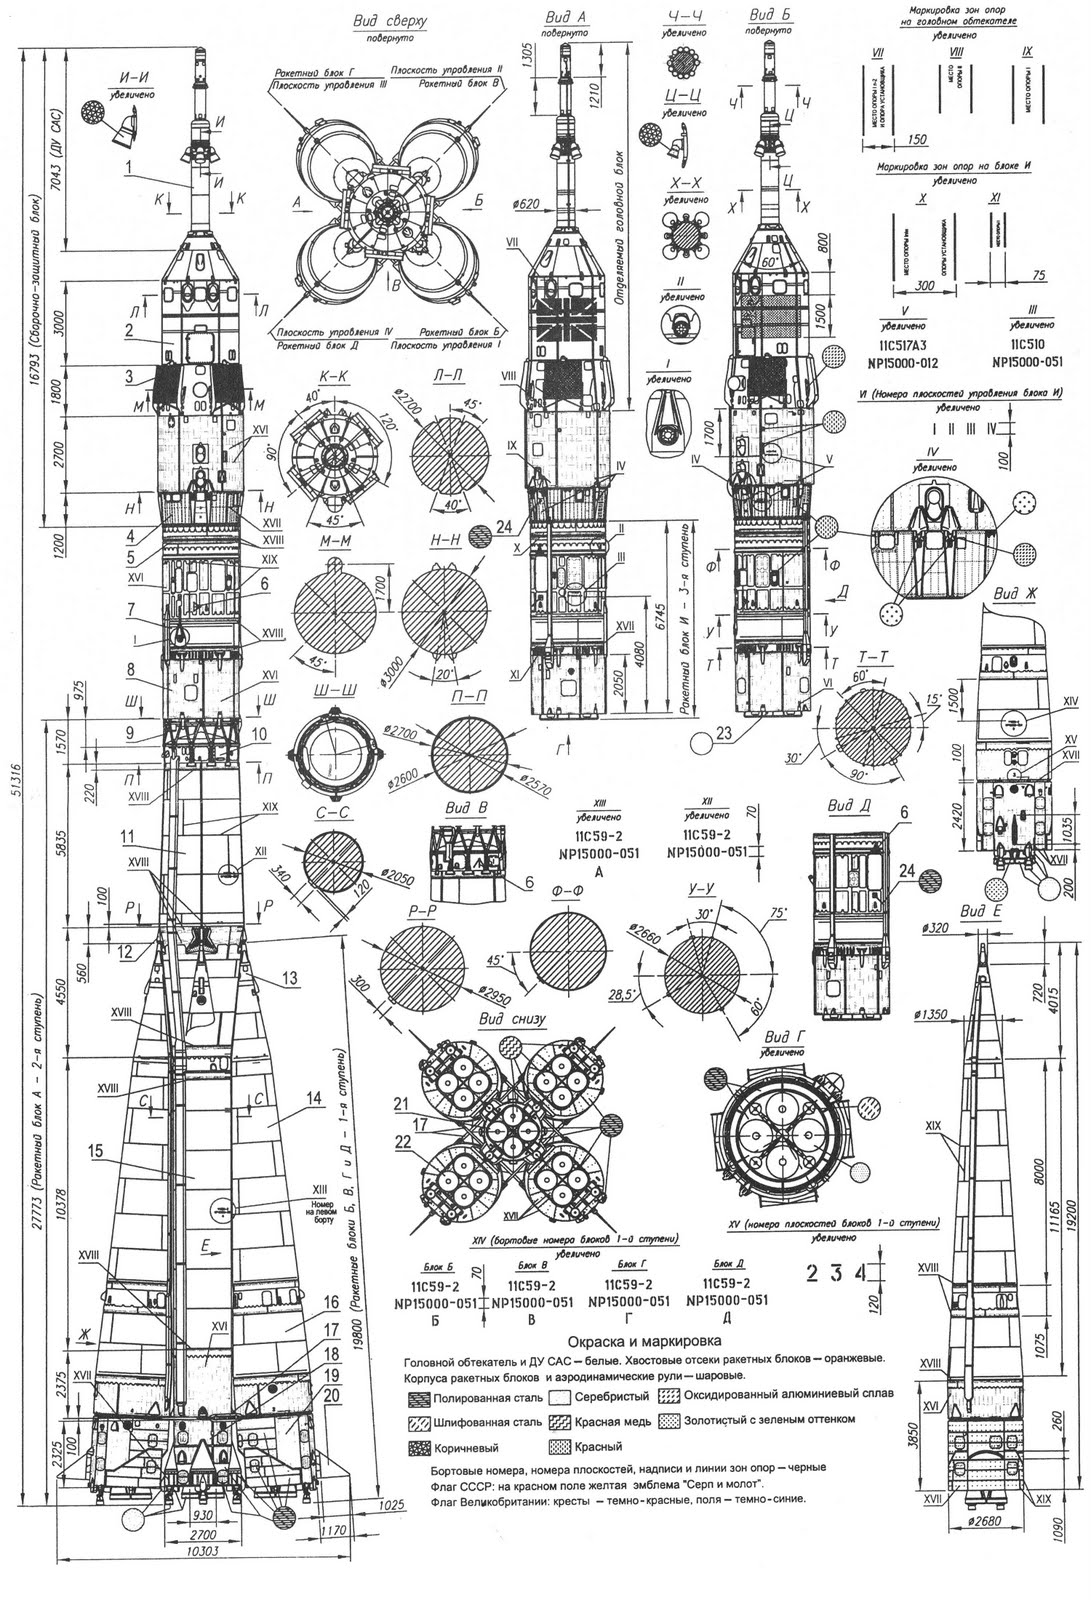 Marlene blueprints now and one of my inspiration sources is blueprints i think they are really cool and full of nice looking stuff just look at these two that i found malvernweather Image collections